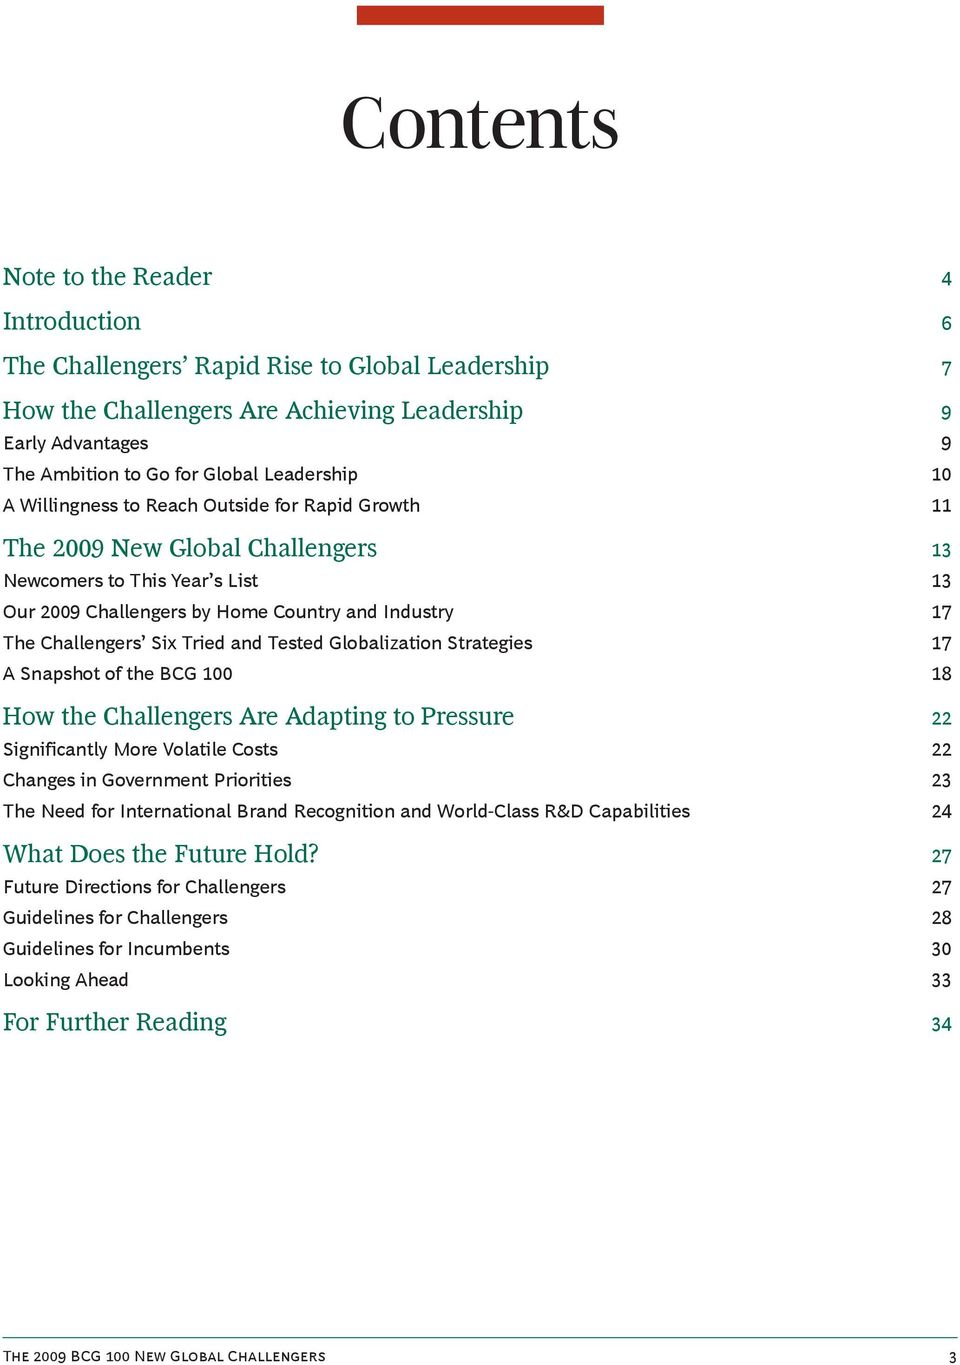 Challengers Six Tried and Tested Globalization Strategies 17 A Snapshot of the BCG 100 18 How the Challengers Are Adapting to Pressure 22 Significantly More Volatile Costs 22 Changes in Government